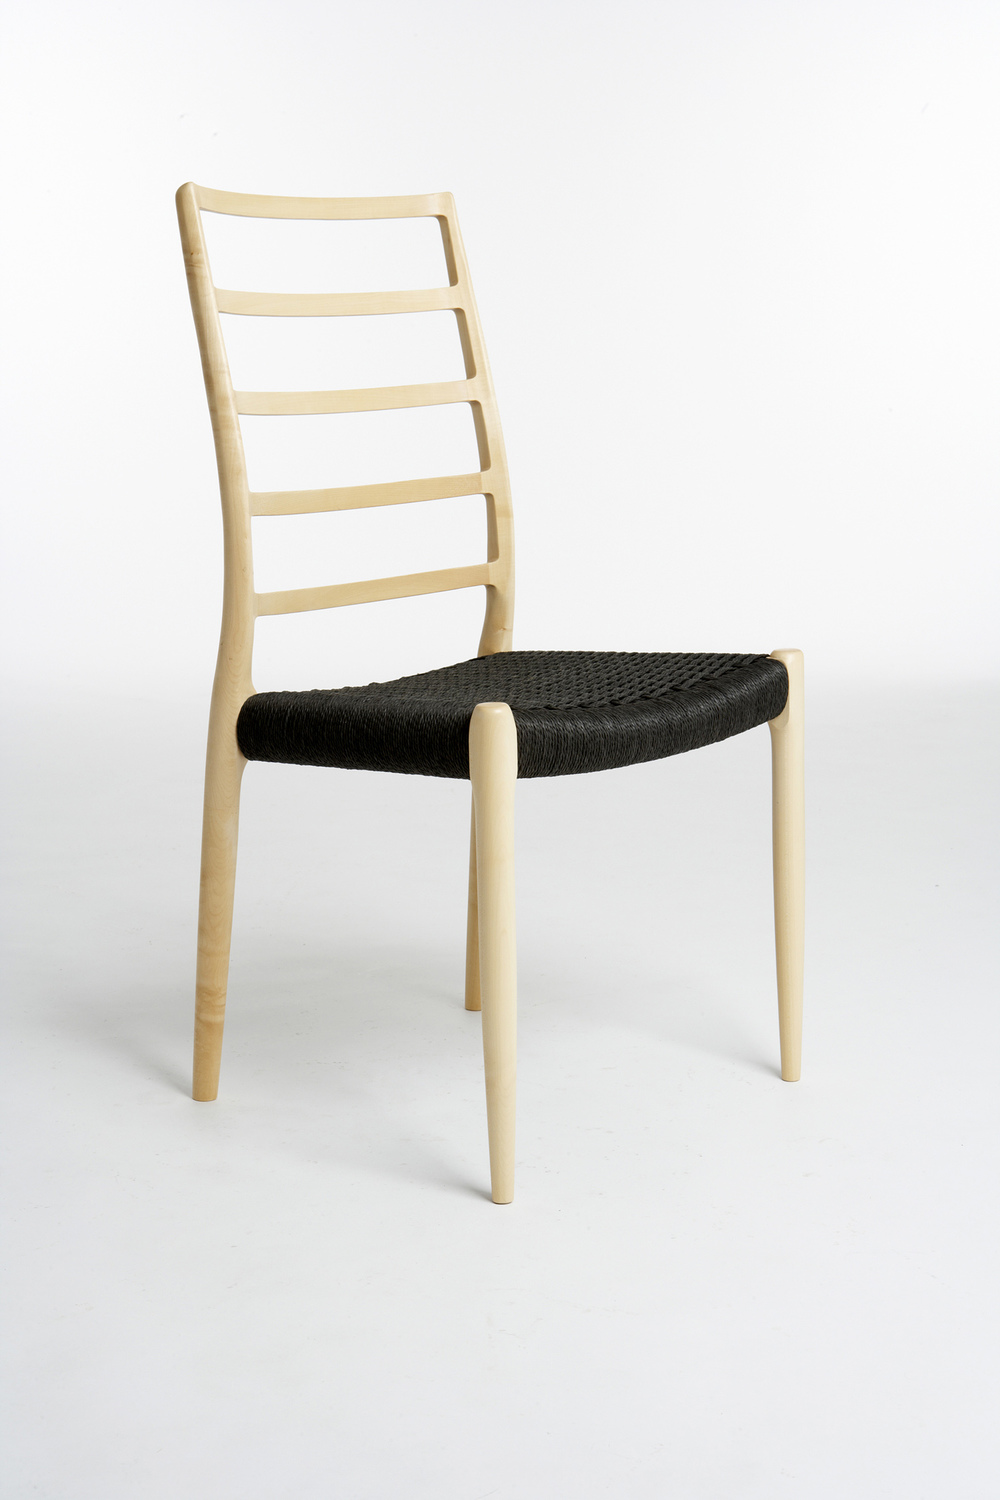 N O Moller 1970 Dining Chair